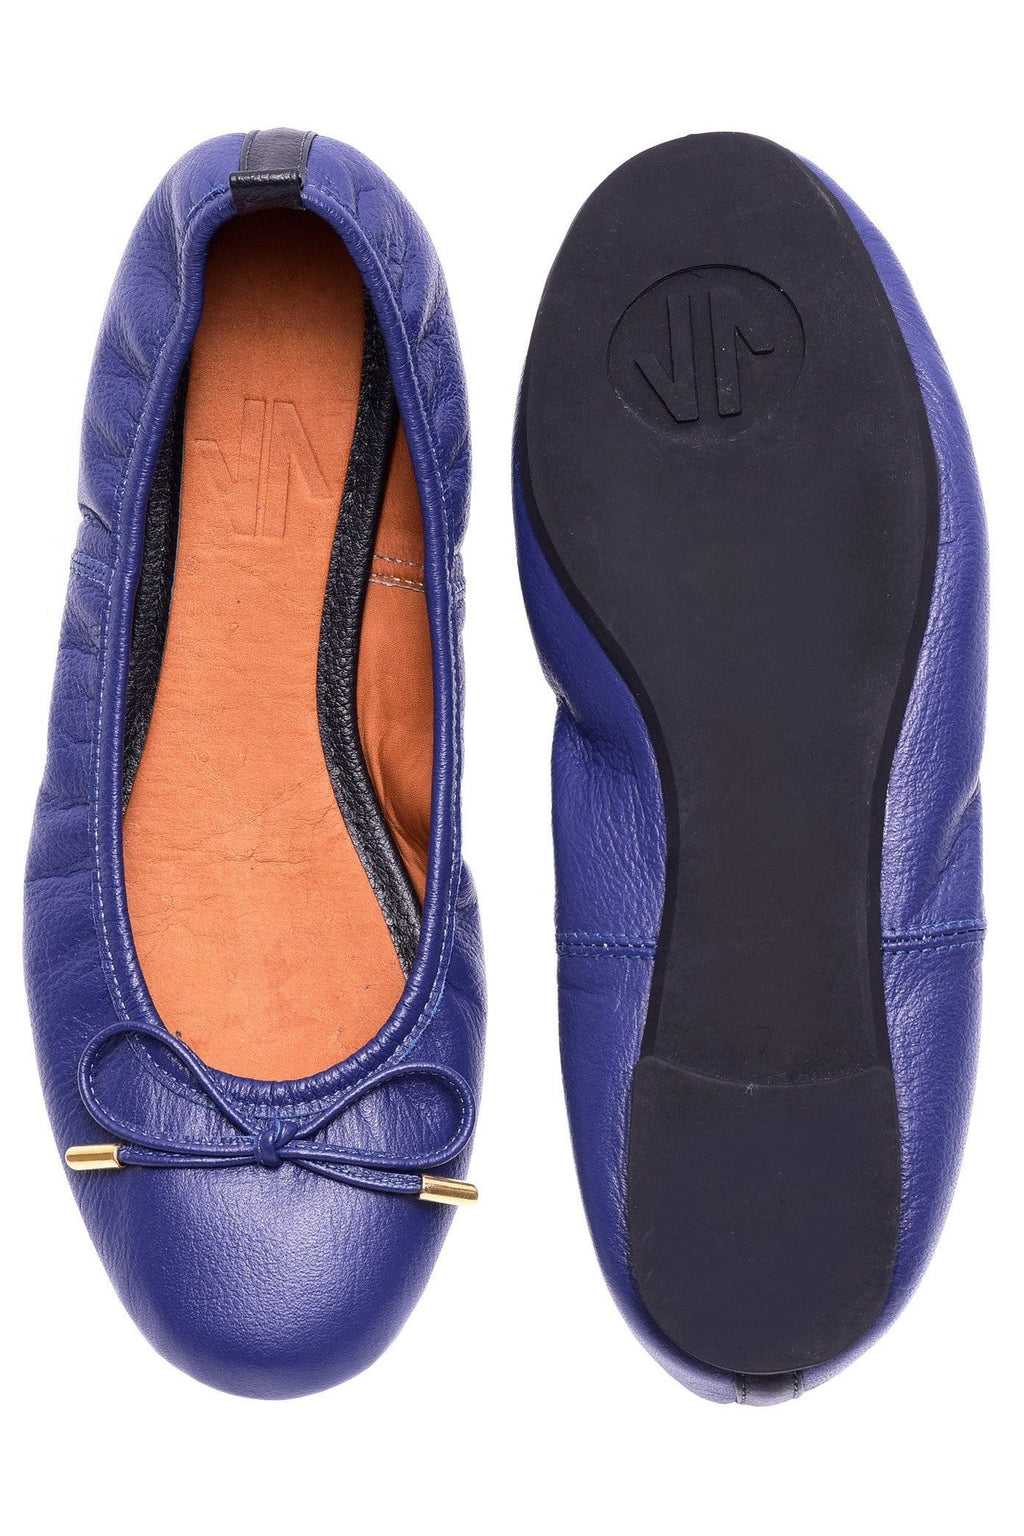 Columbian Leather Ballerina Flats in Blue - Himelhoch's